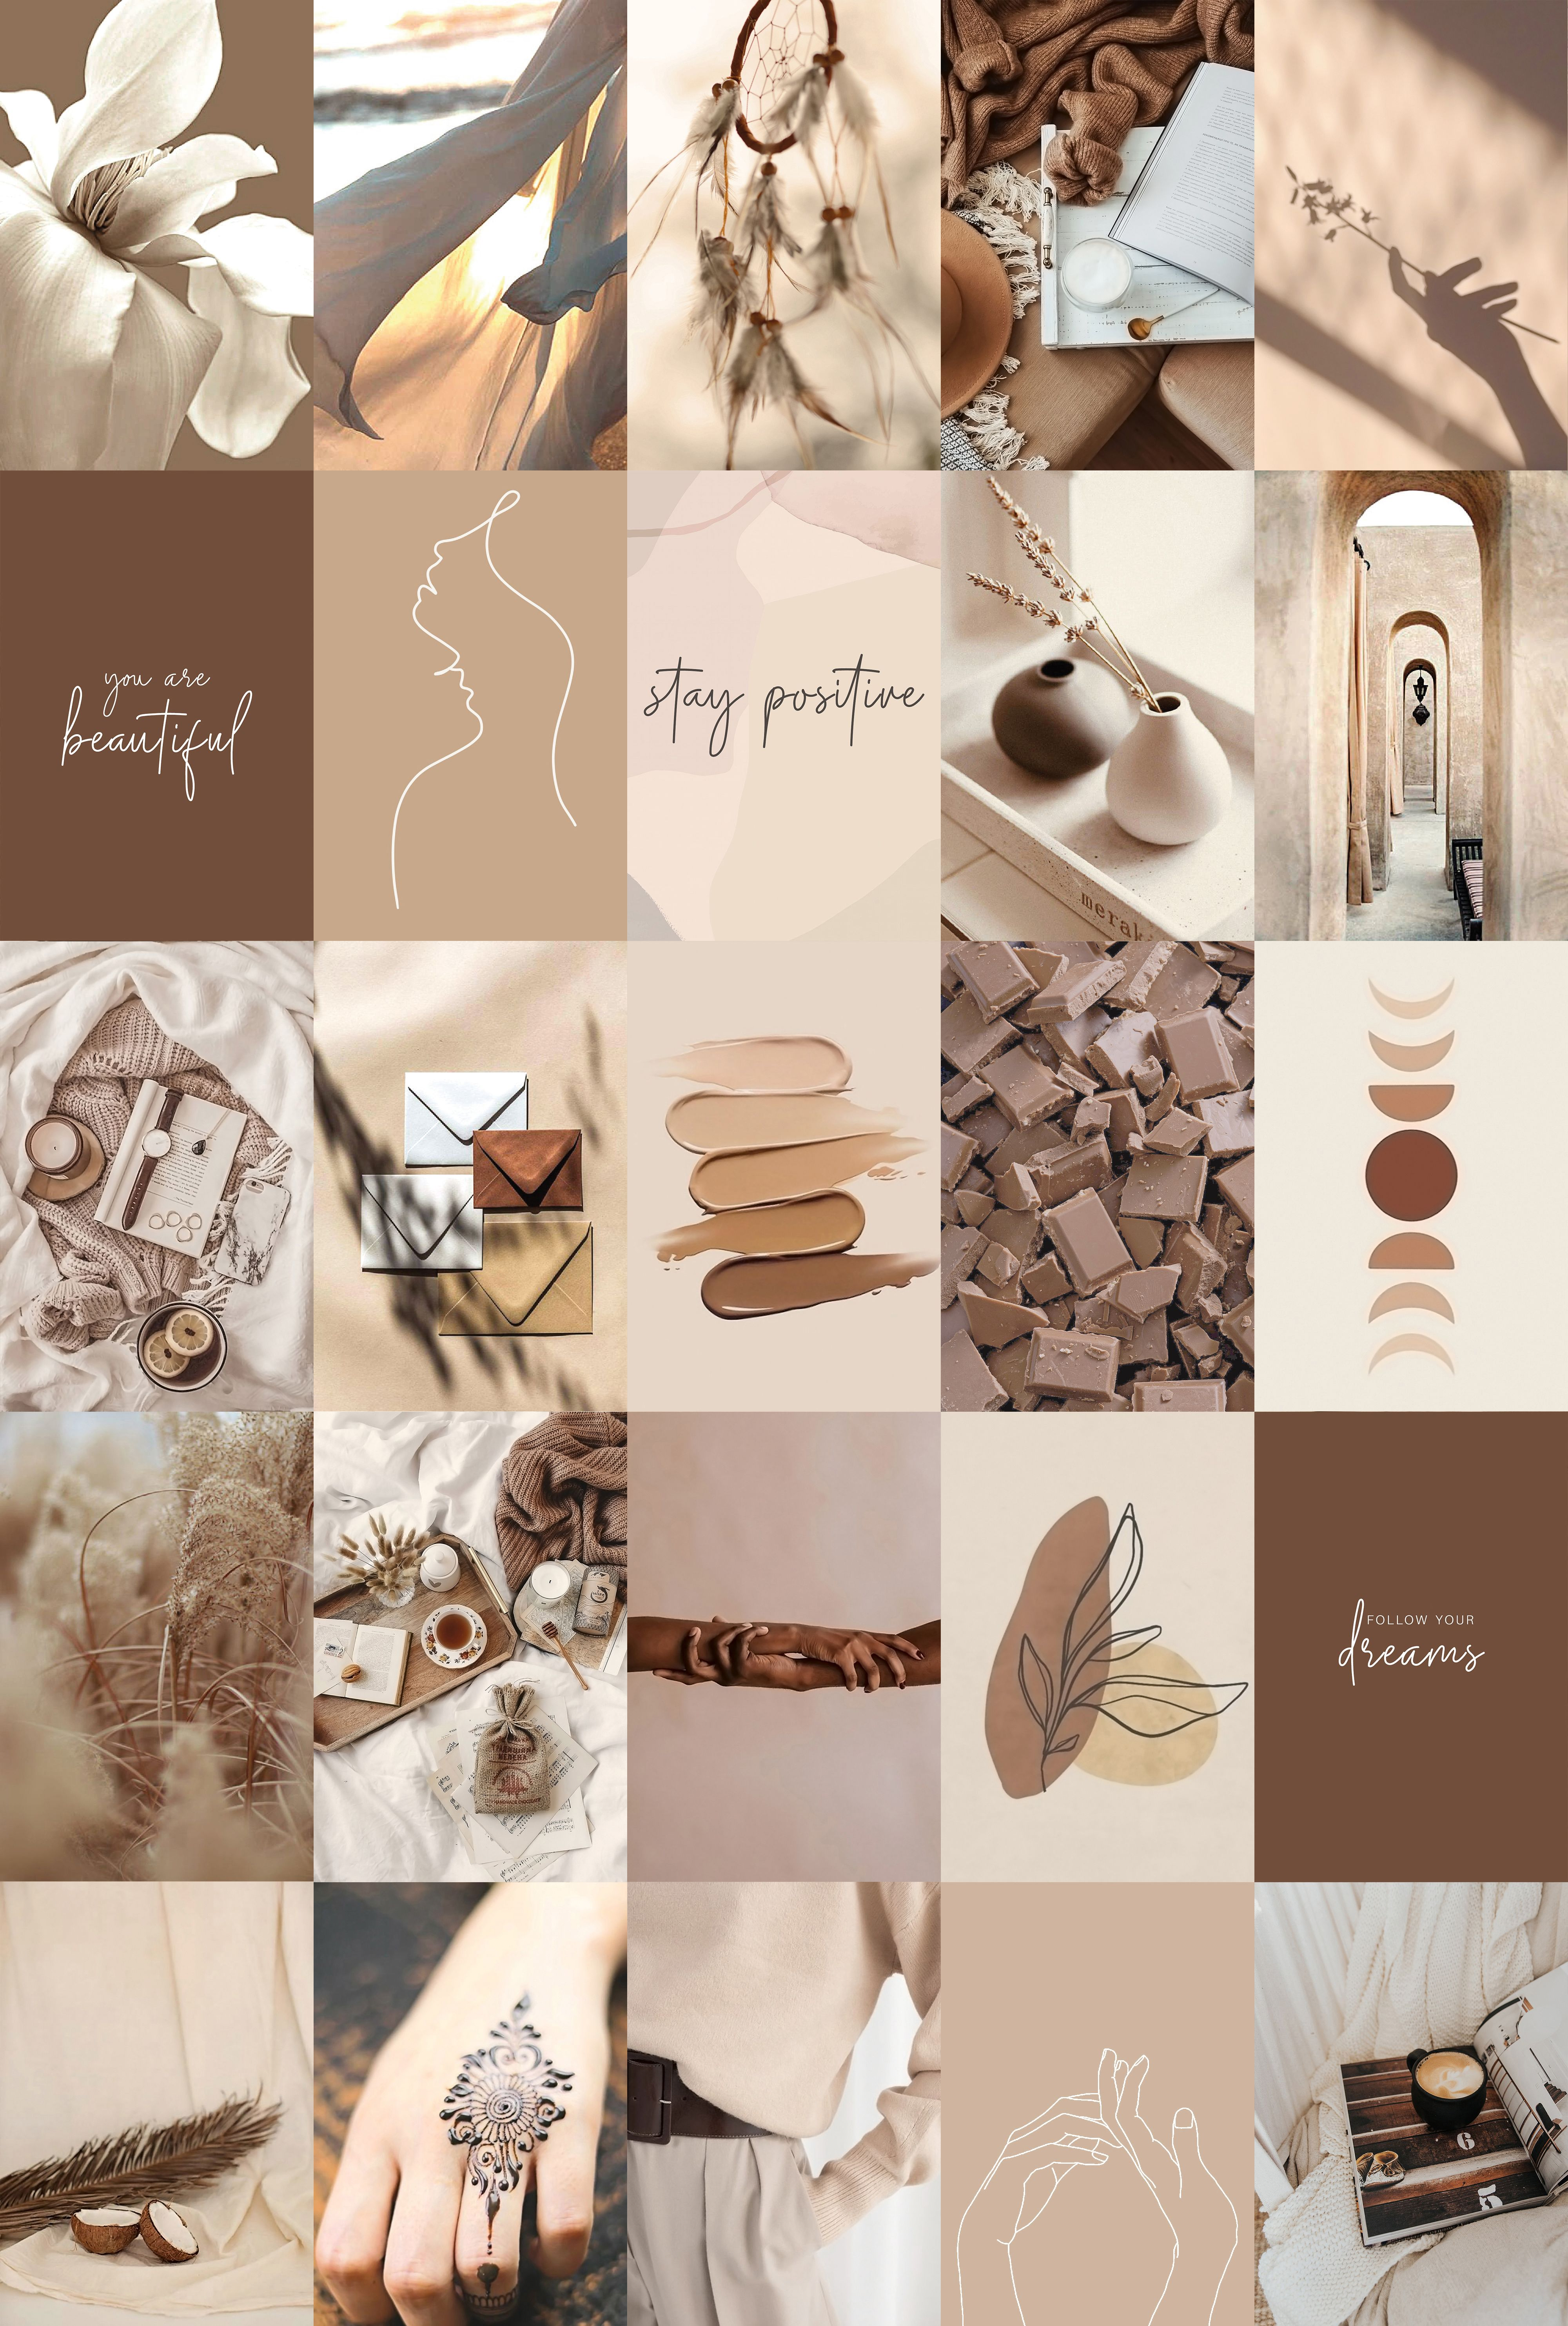 You can also upload and share your favorite brown aesthetic desktop wallpapers. Boho Collage Kit Aesthetic Beige Cream Brown, Trendy Girl ...